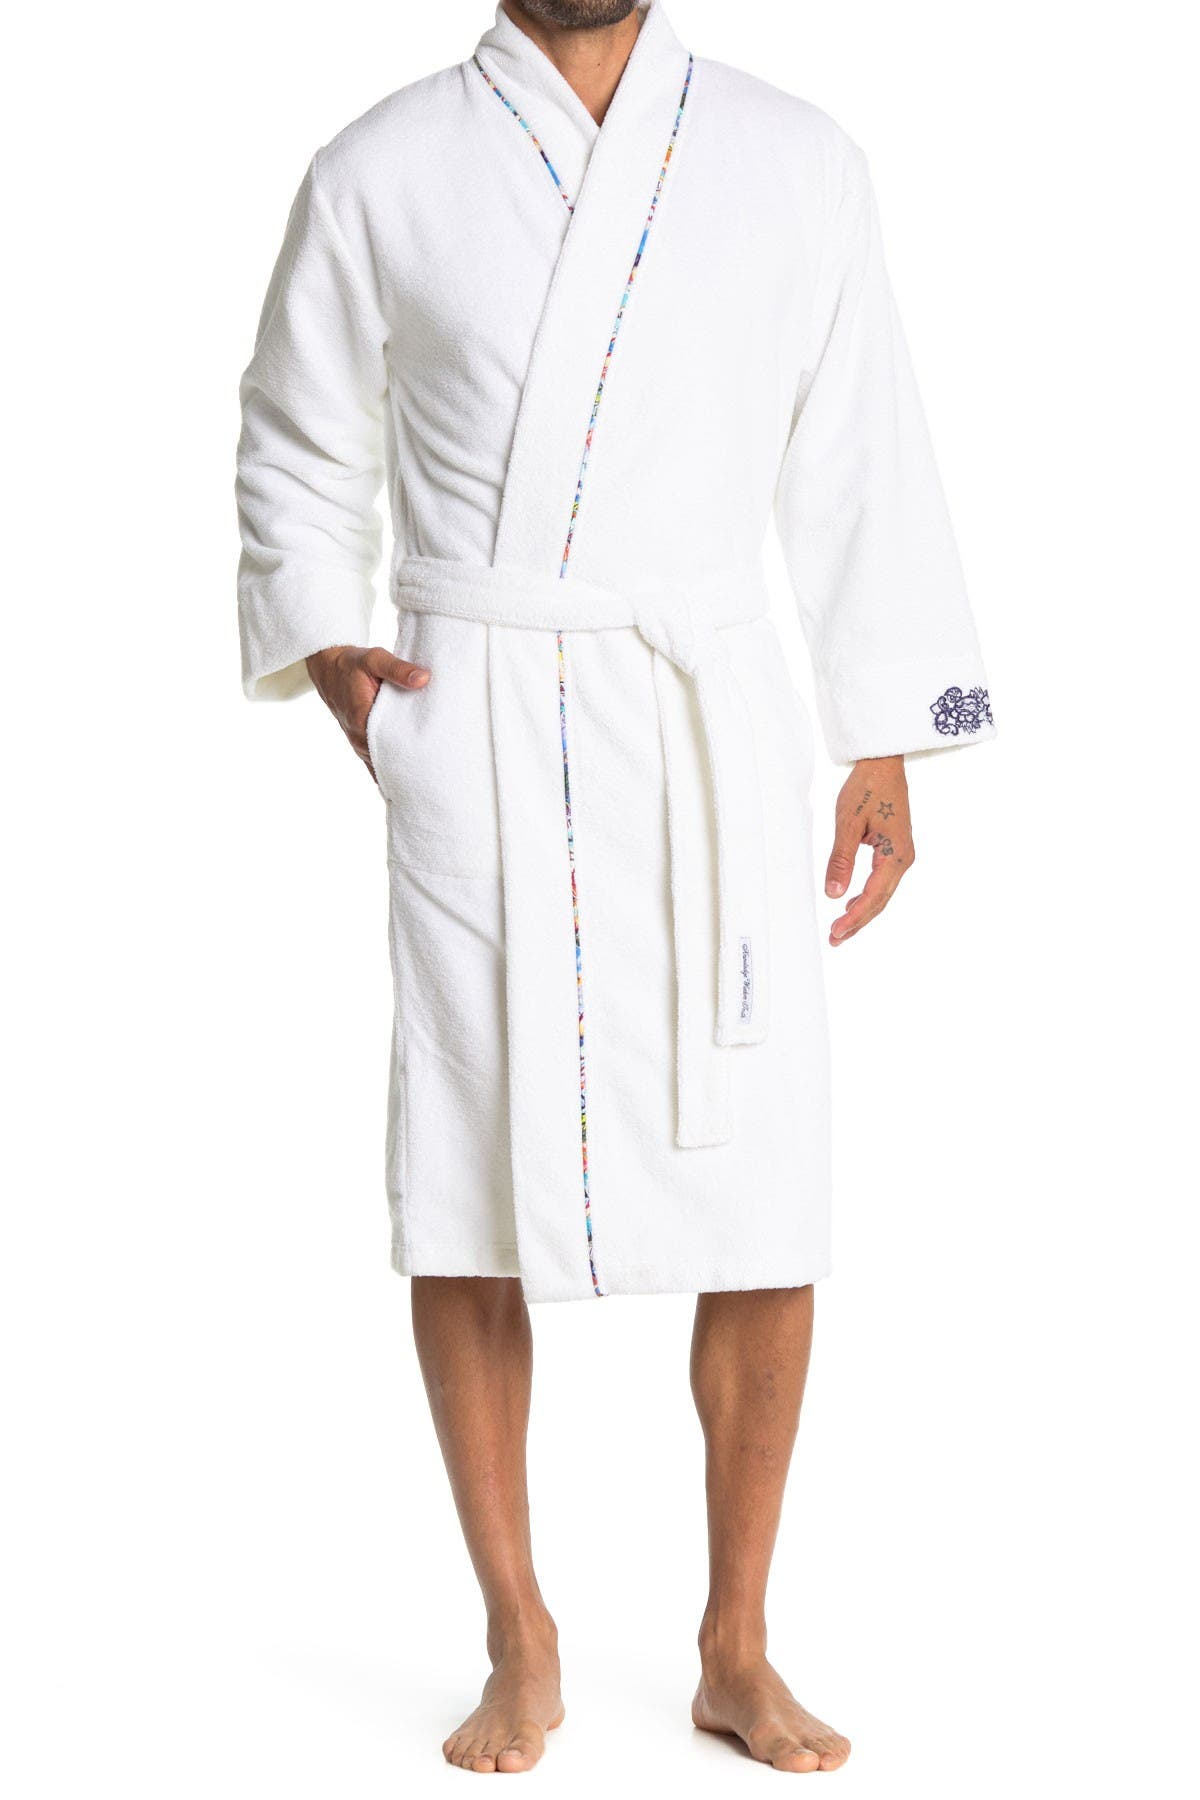 Image of Robert Graham Skull Embroidered French Terry Robe